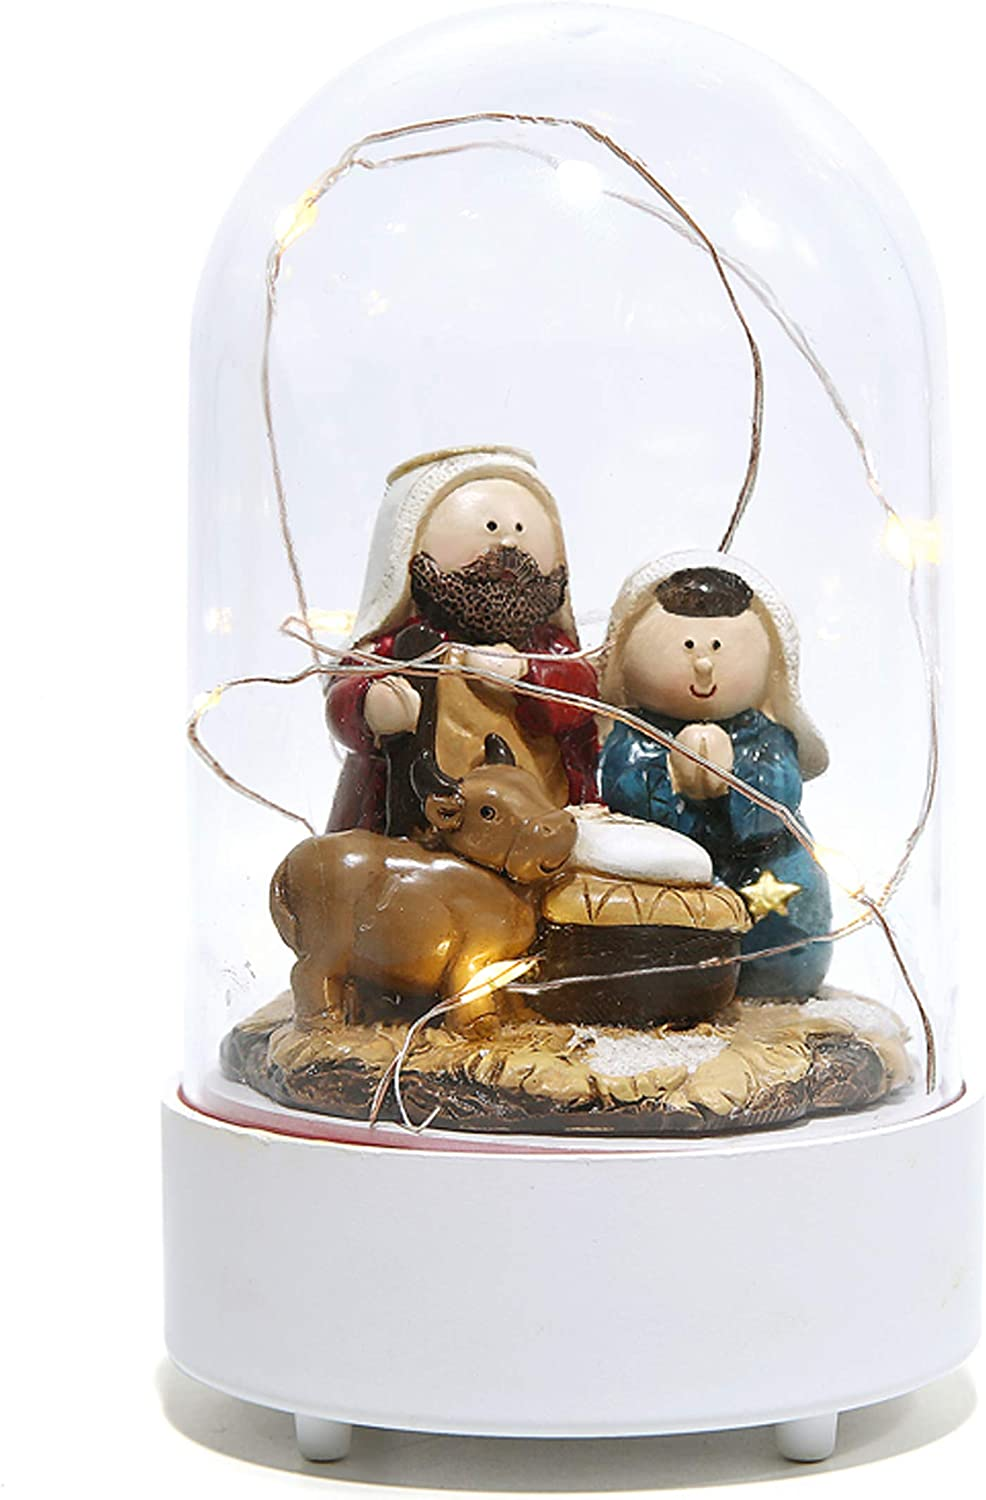 Manger Scene Holy Family Figurine Nativity Sets in Dome for Indoor Decoration and Display on Mantel or Window Sill